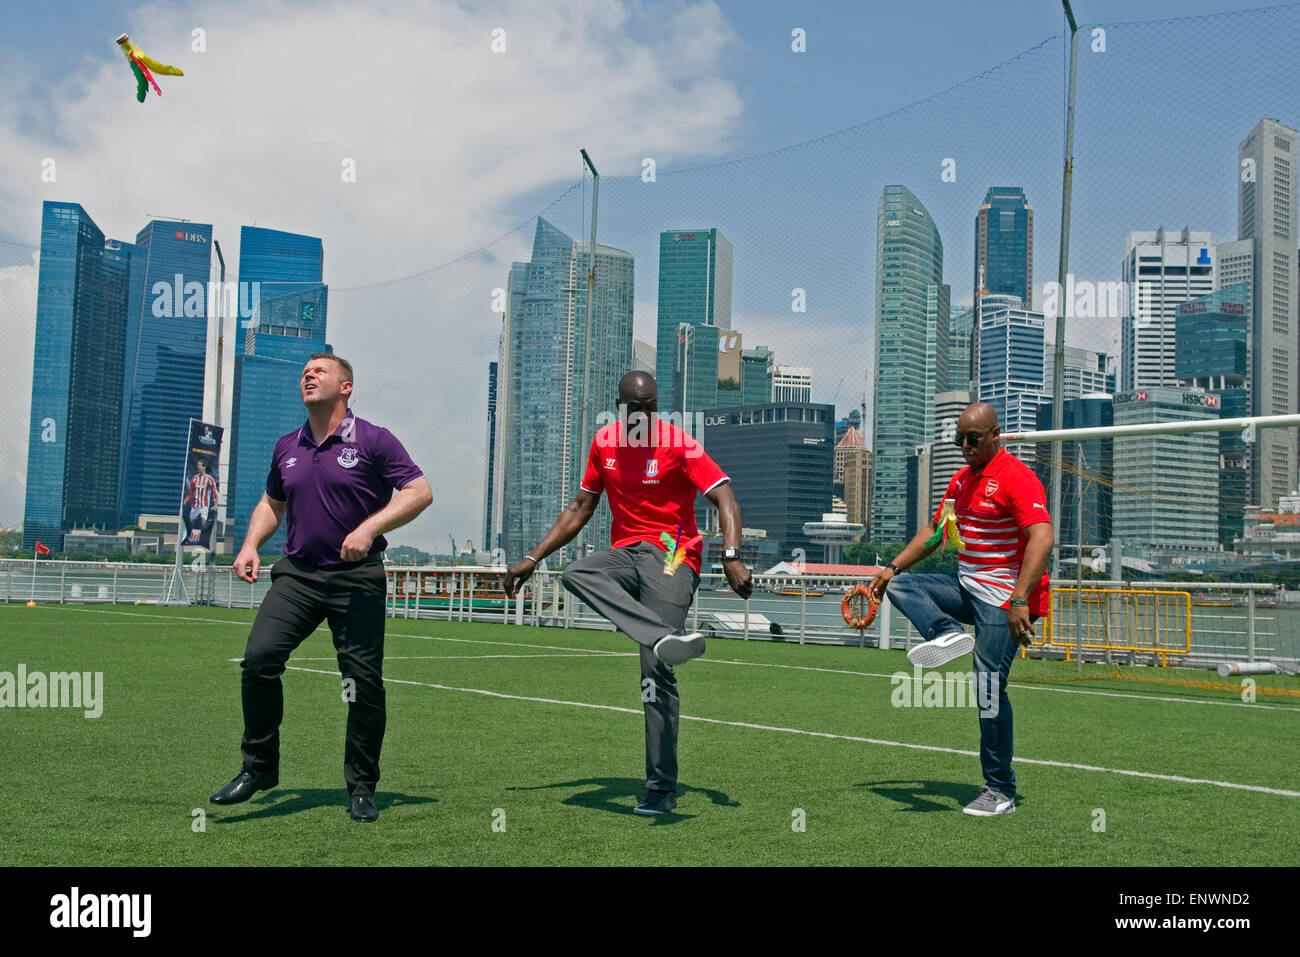 Singapore, Singapore. 12th May, 2015. Former Barclays Premier League (BPL) Arsenal player Ian Wright (R), former Stock Photo